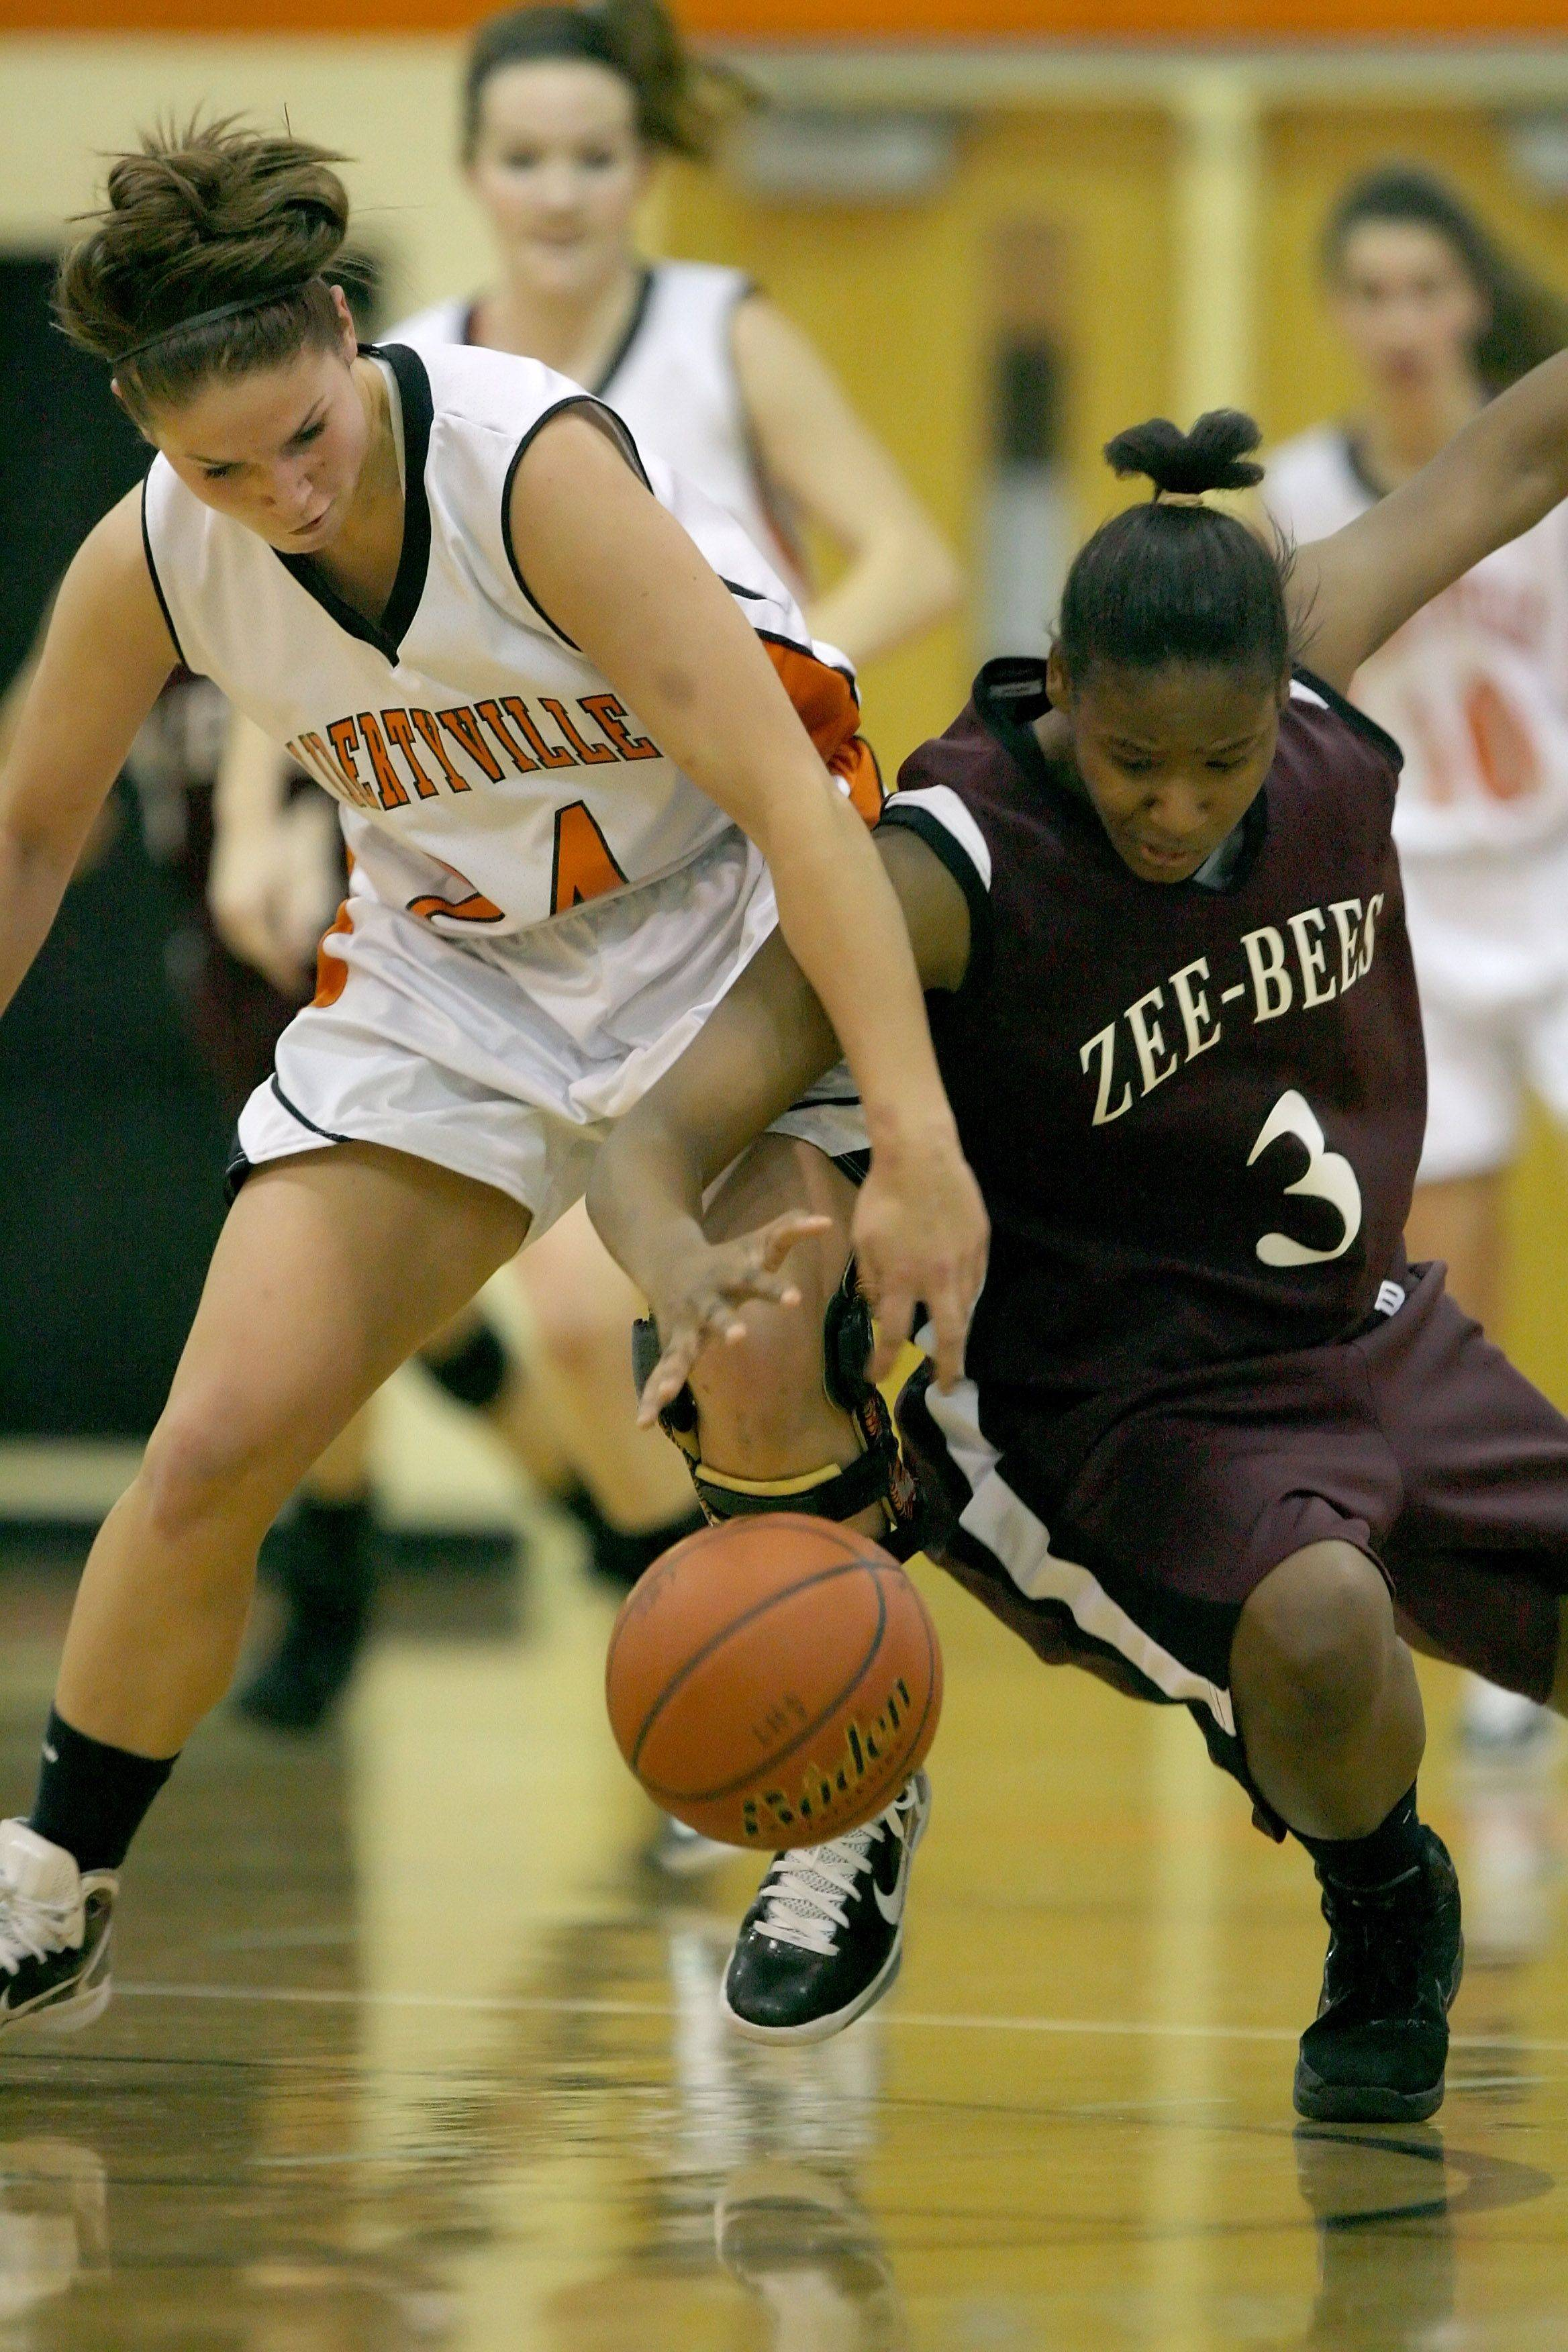 Libertyville's Kaca Savatic, left, and Zion's Octavia Crump battle for a loose ball.